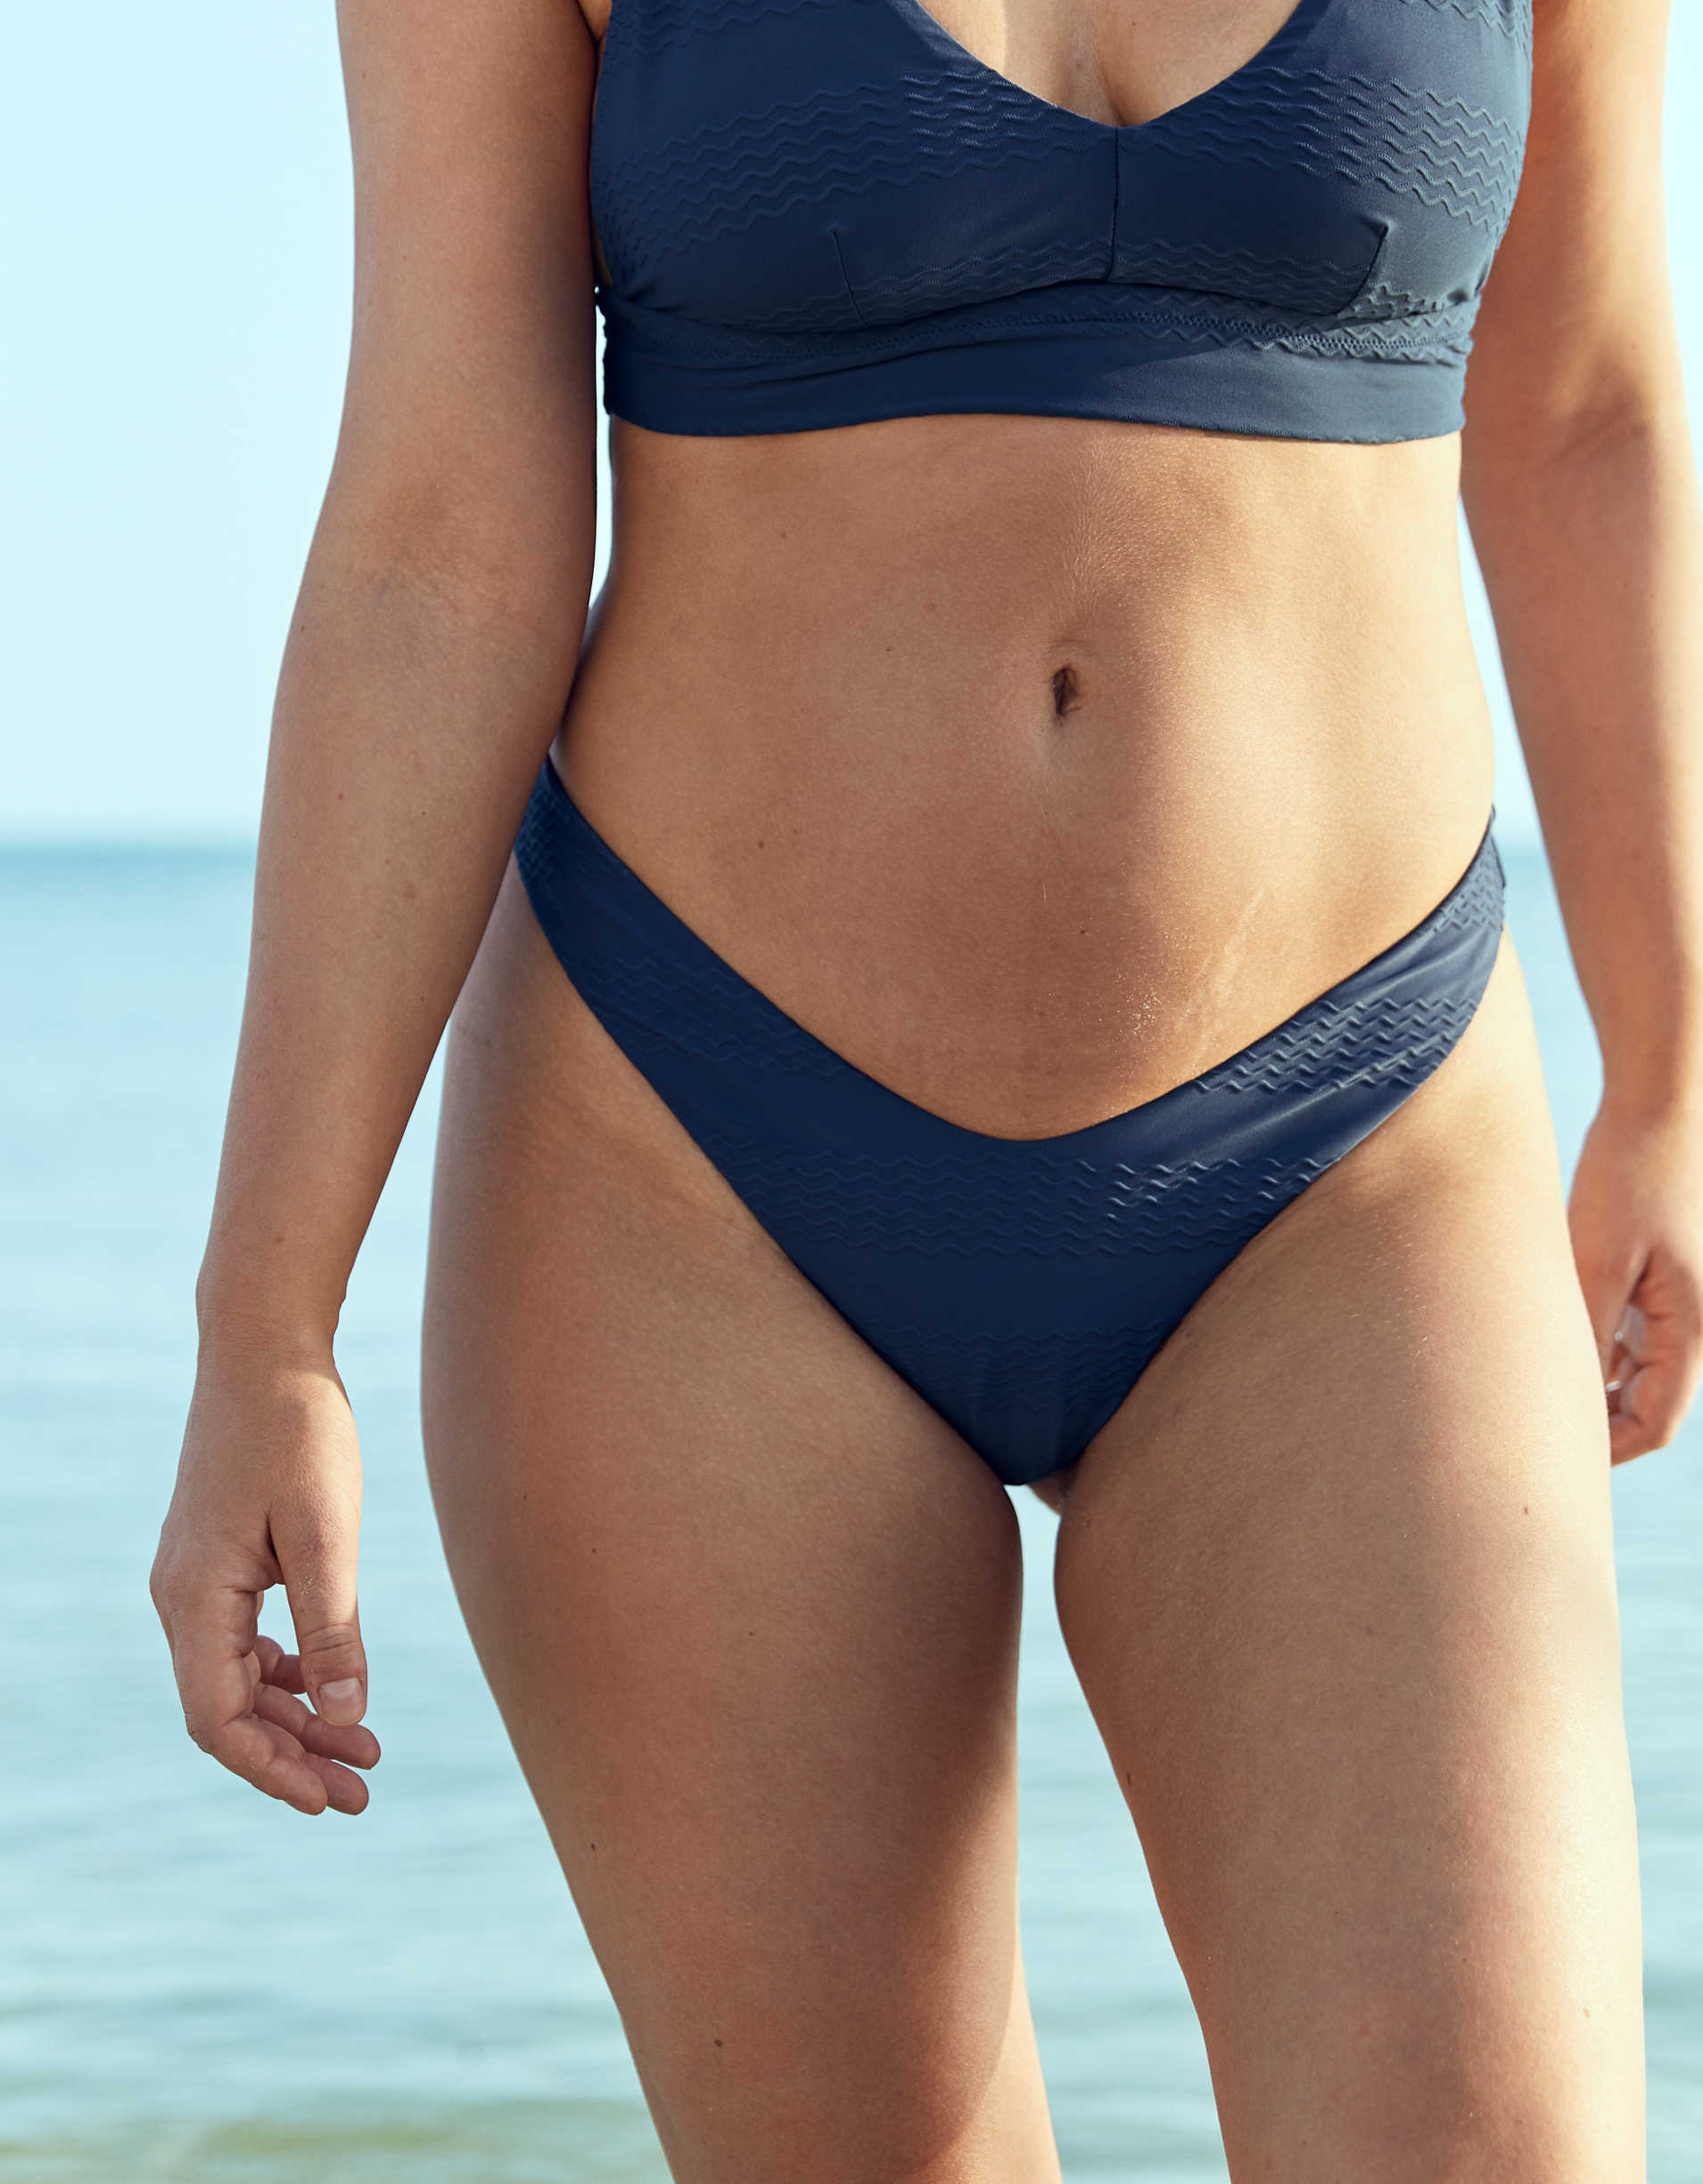 Aerie Jacquard Super High Cut Cheekiest Bikini Bottom